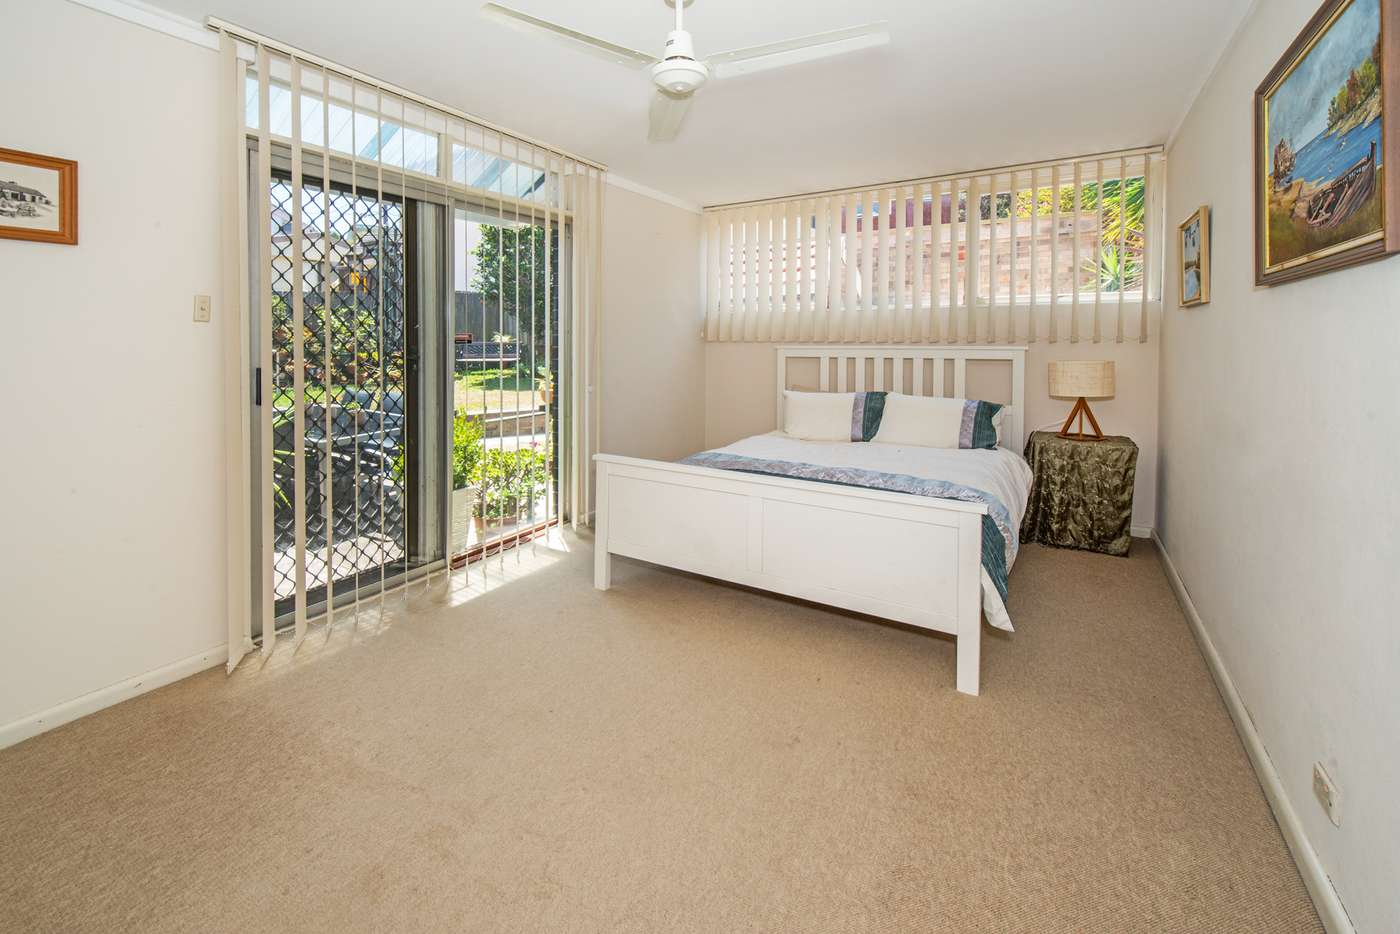 Fifth view of Homely house listing, 140 Duncan Street, Maroubra NSW 2035